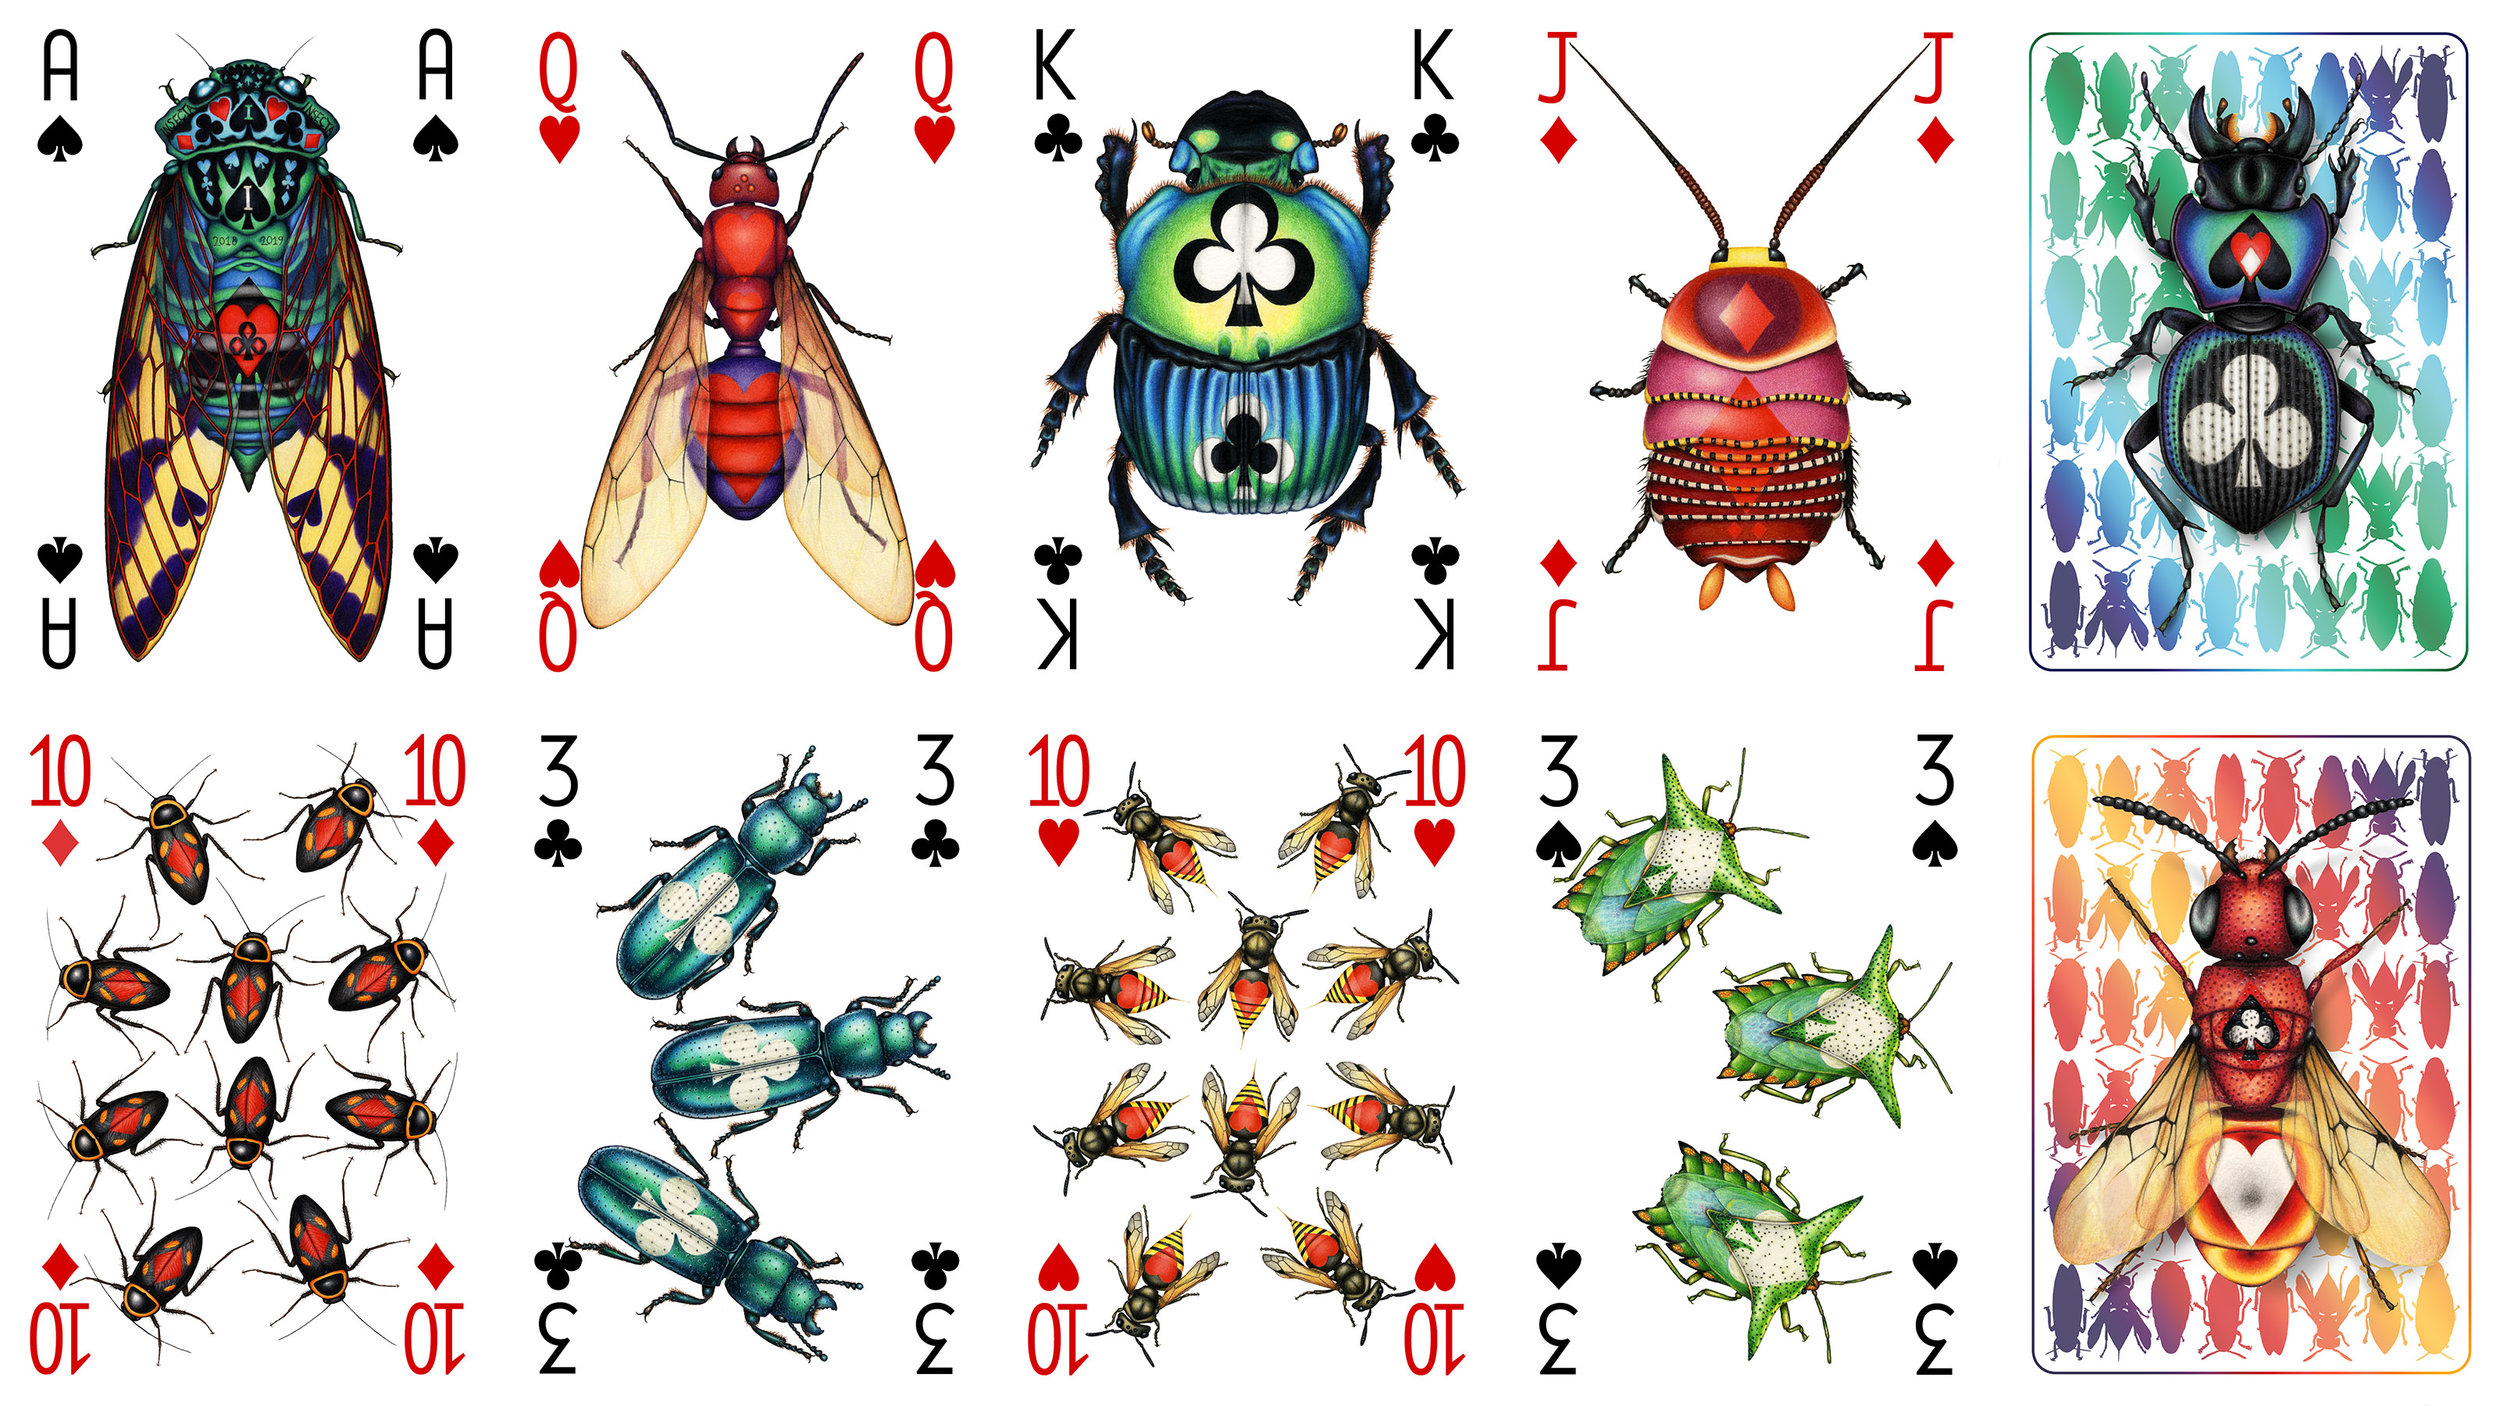 Designs from my next entomological poker deck, where different taxonomic orders of insects carry suit symbols